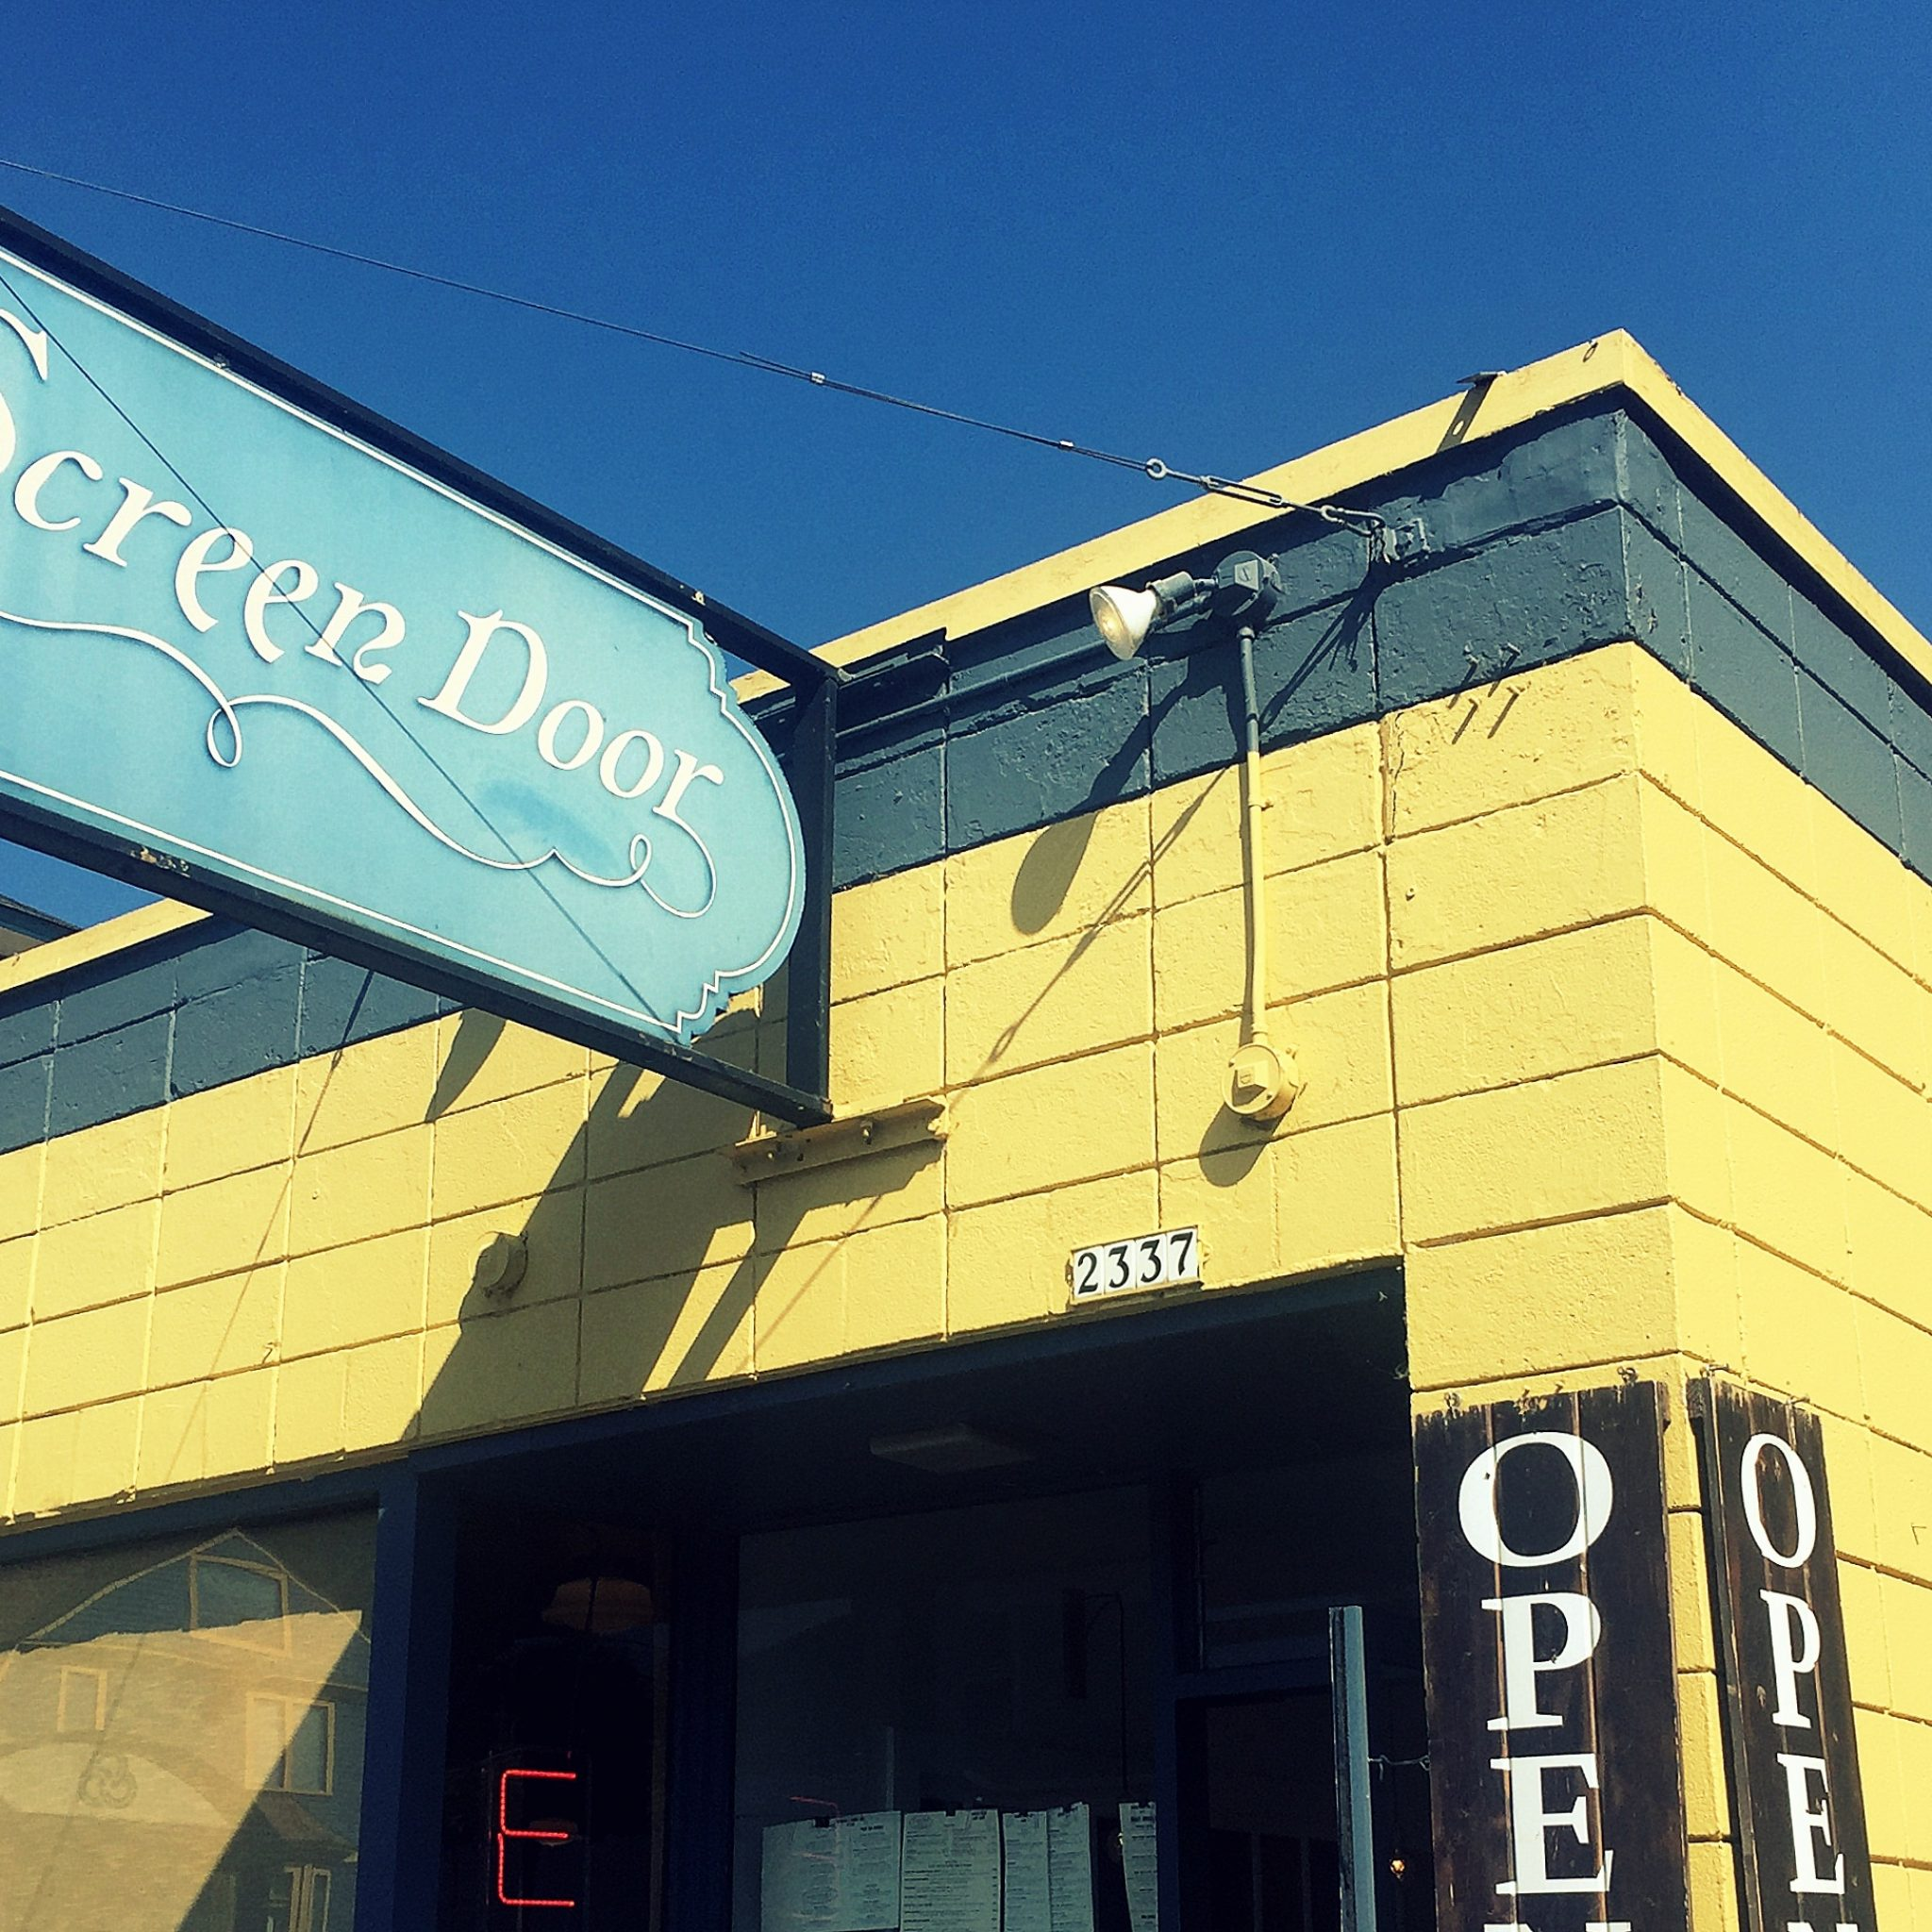 Screen Door is a brunch staple serving all the Southern specialties, but the list of alternative venues is long.